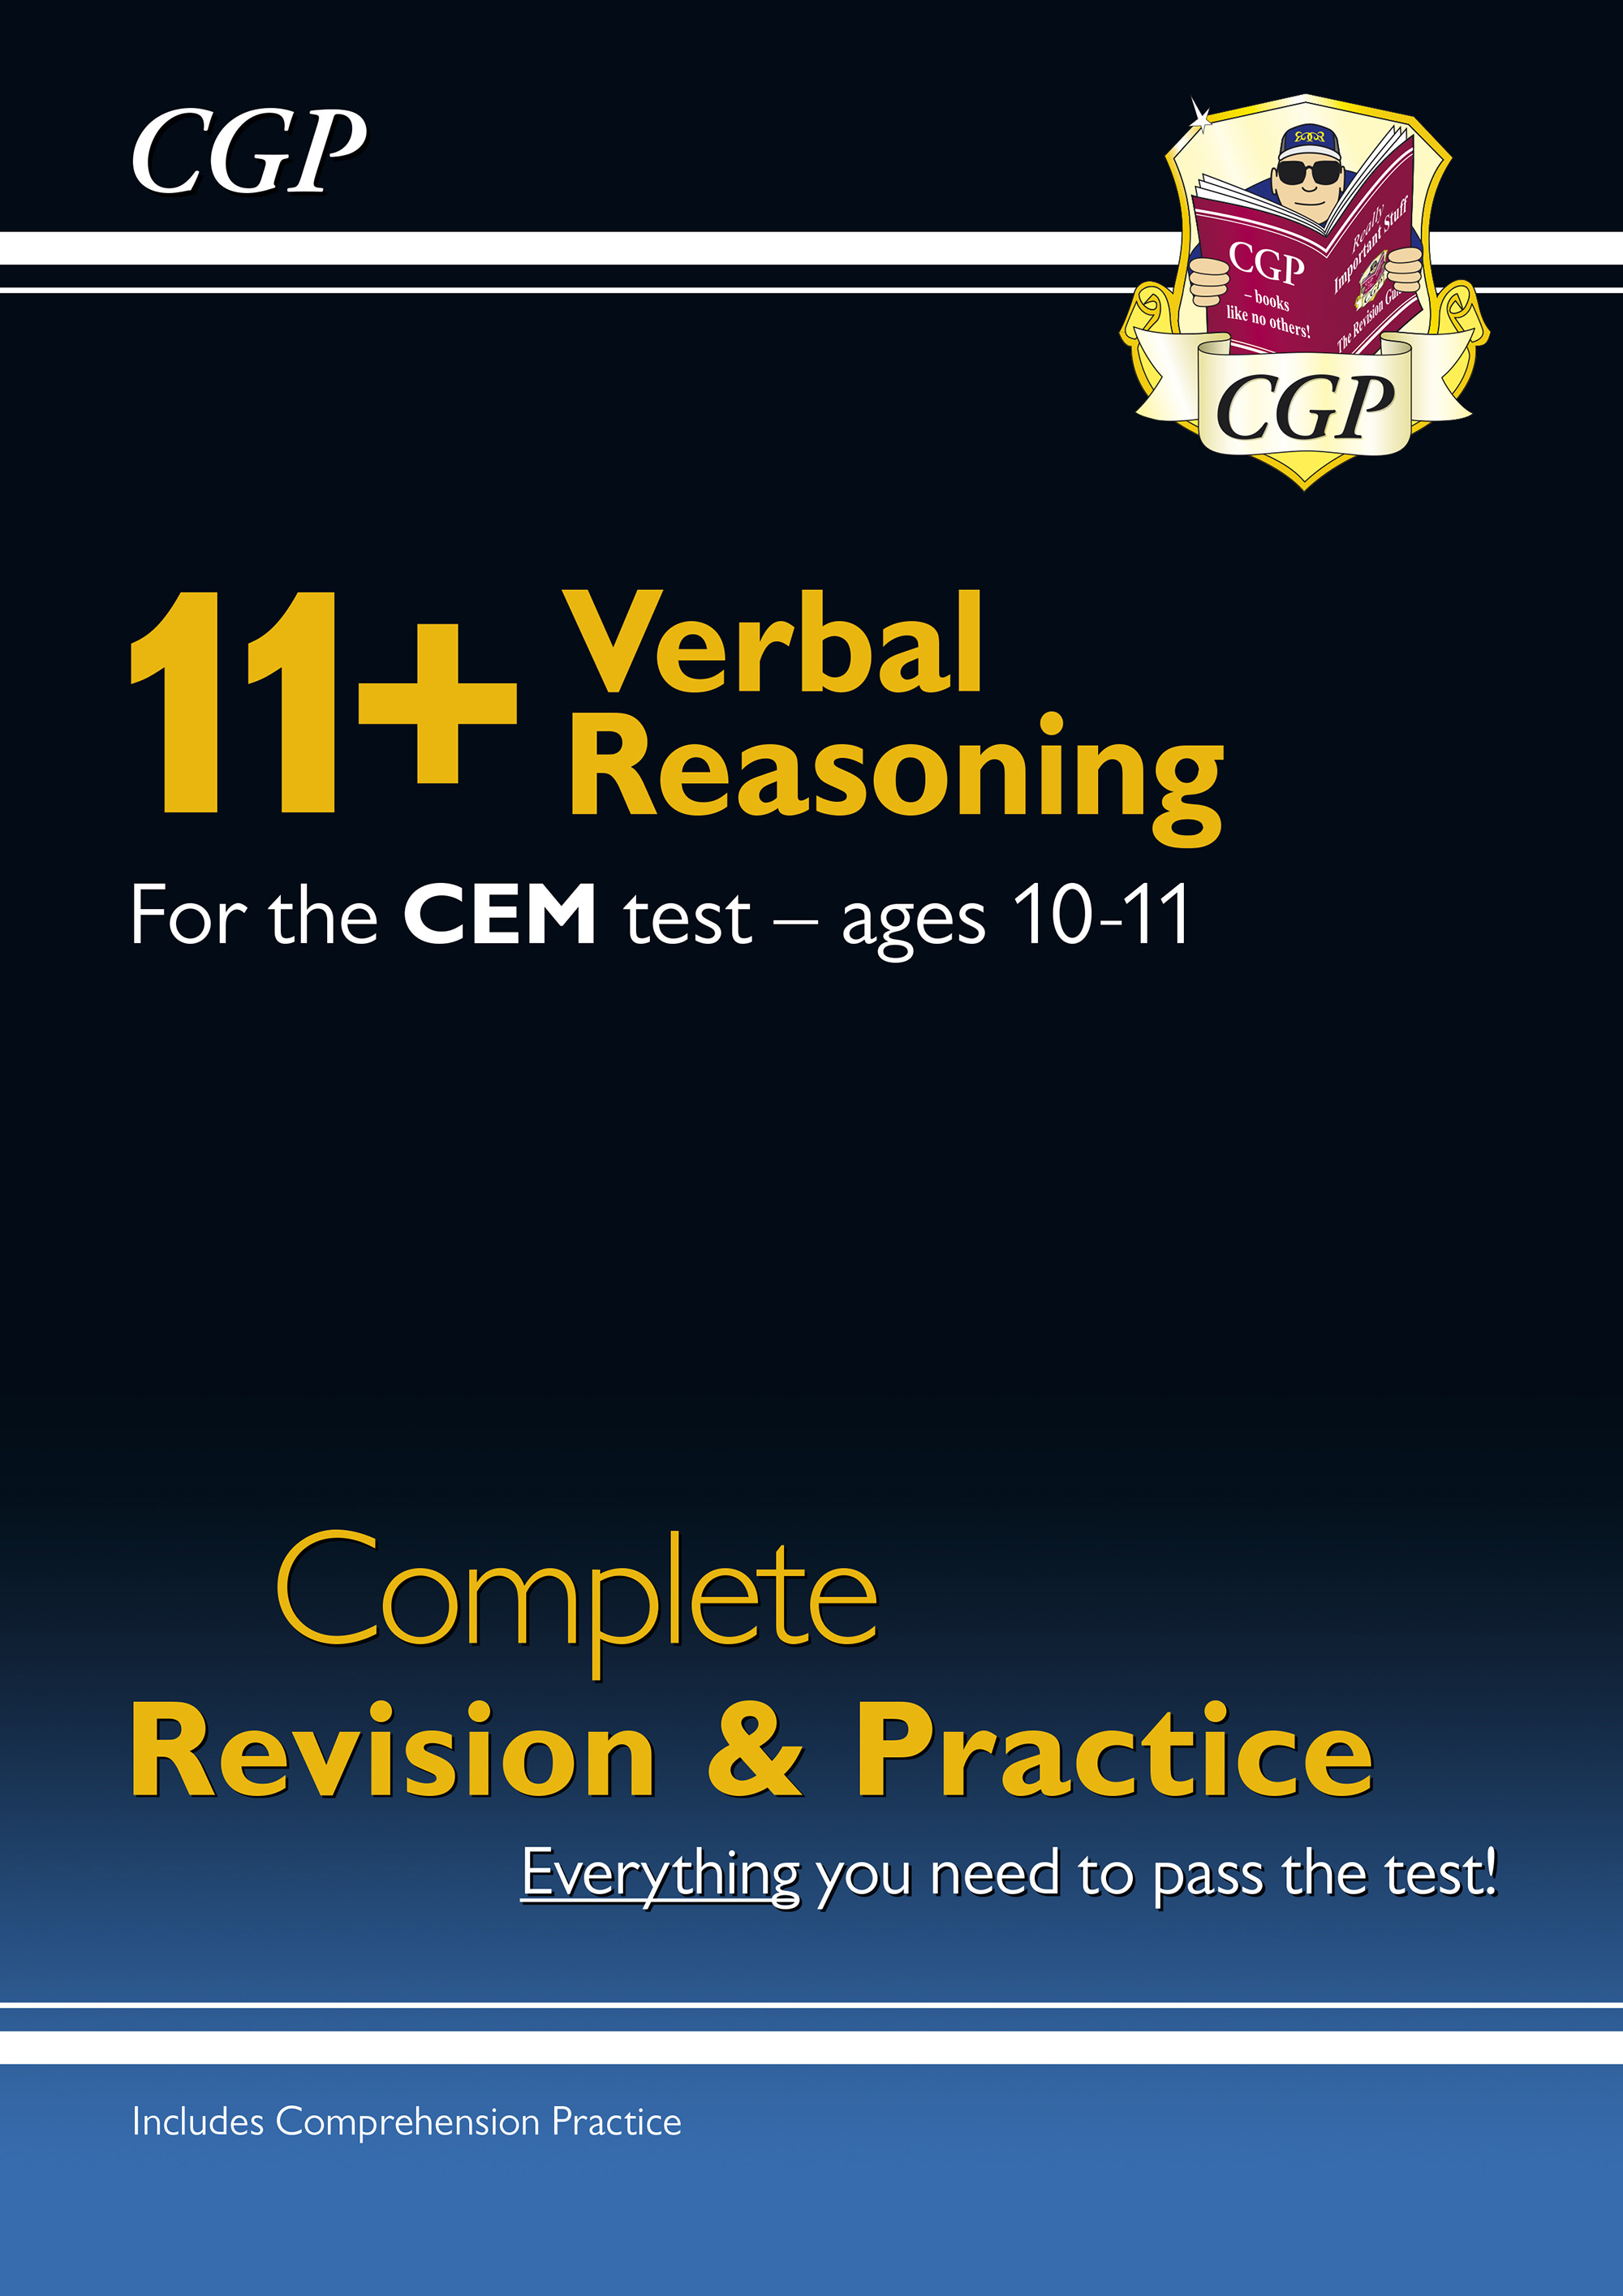 VHSDE1DK - New 11+ CEM Verbal Reasoning Complete Revision and Practice - Ages 10-11